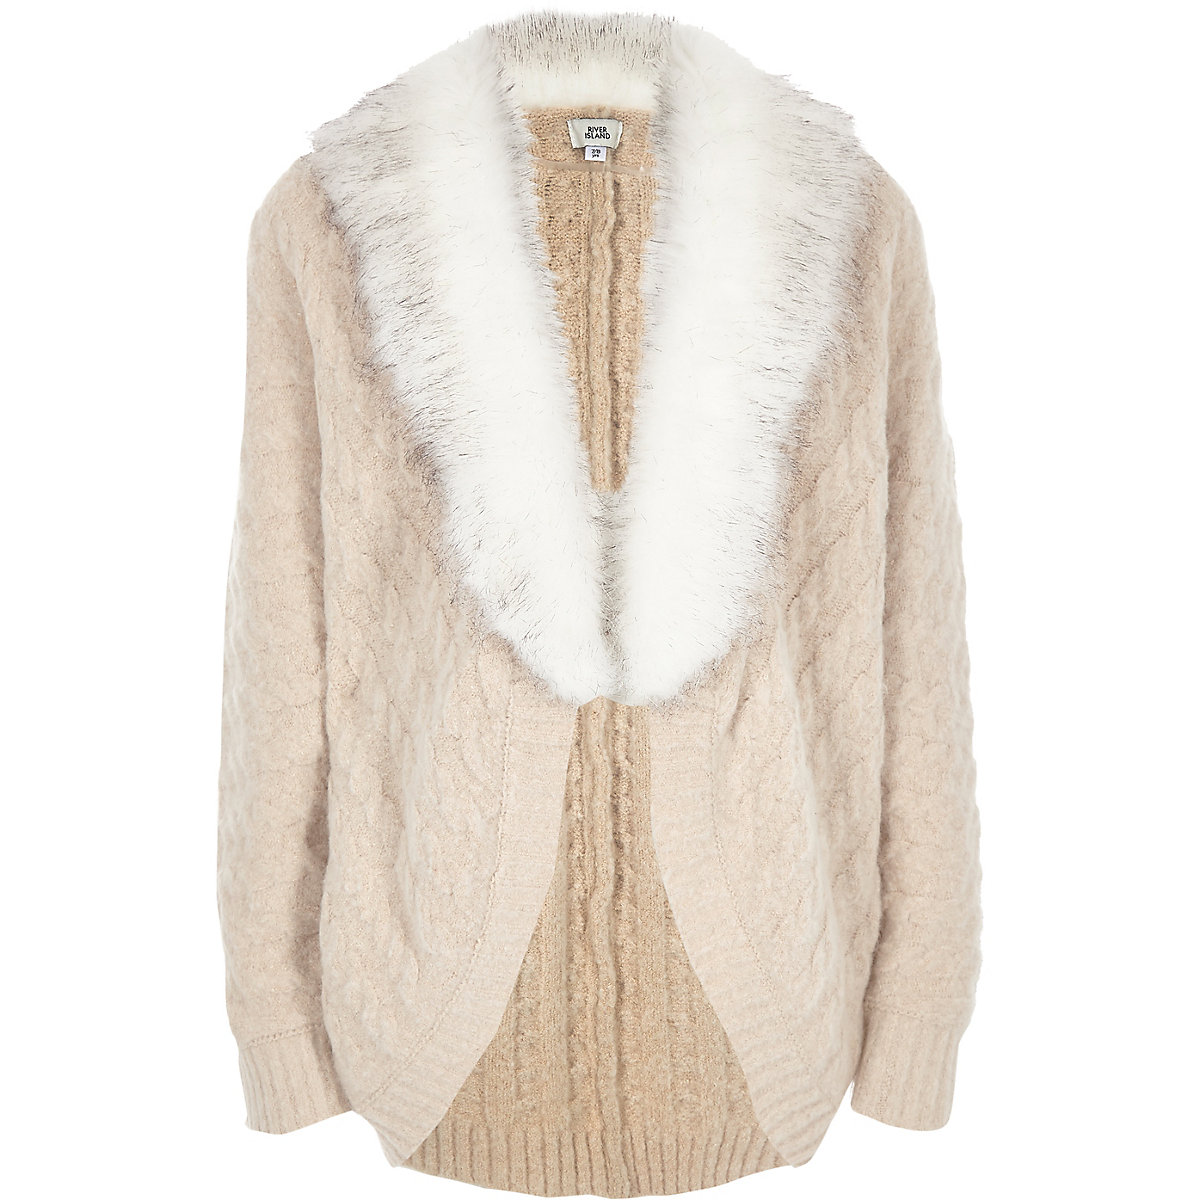 42cfc43699810 Girls light brown knit faux fur trim cardigan - Cardigans   Jumpers - Tops  - girls